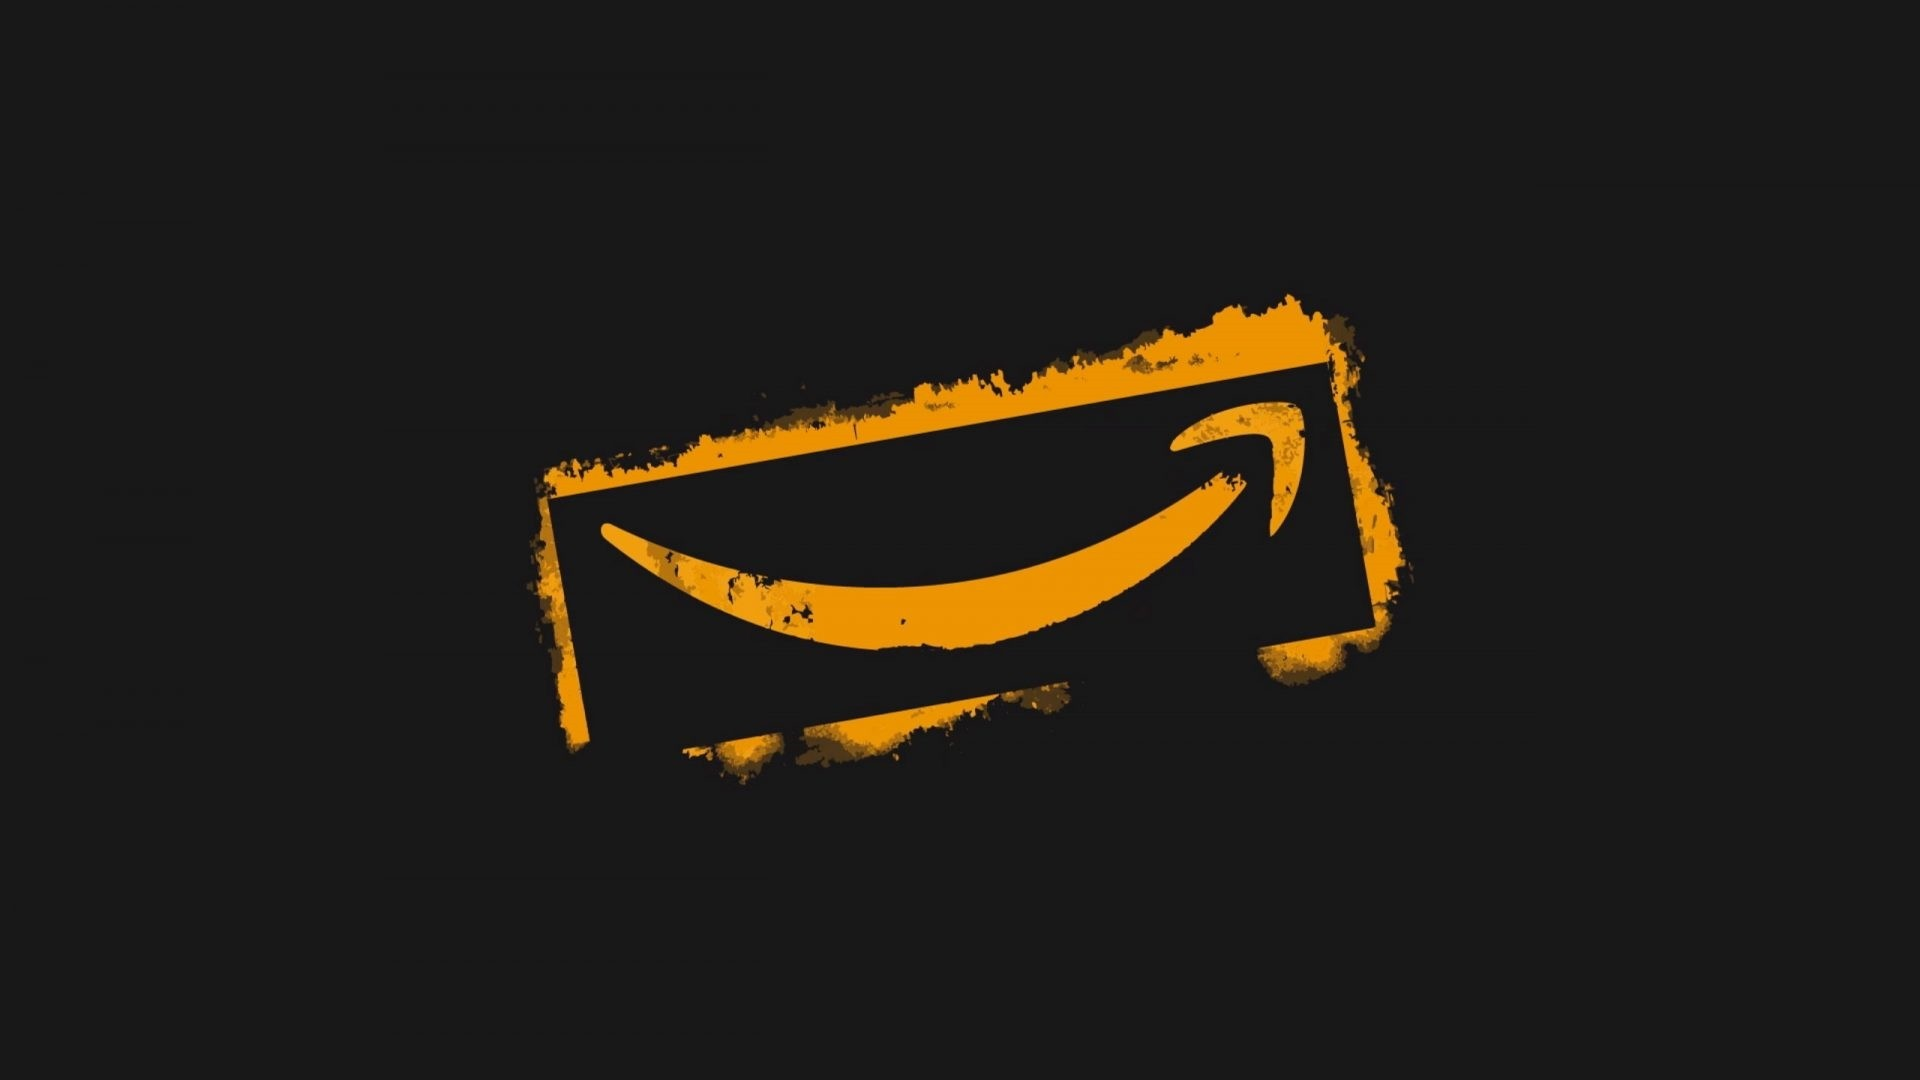 Amazon Free Wallpaper and Background